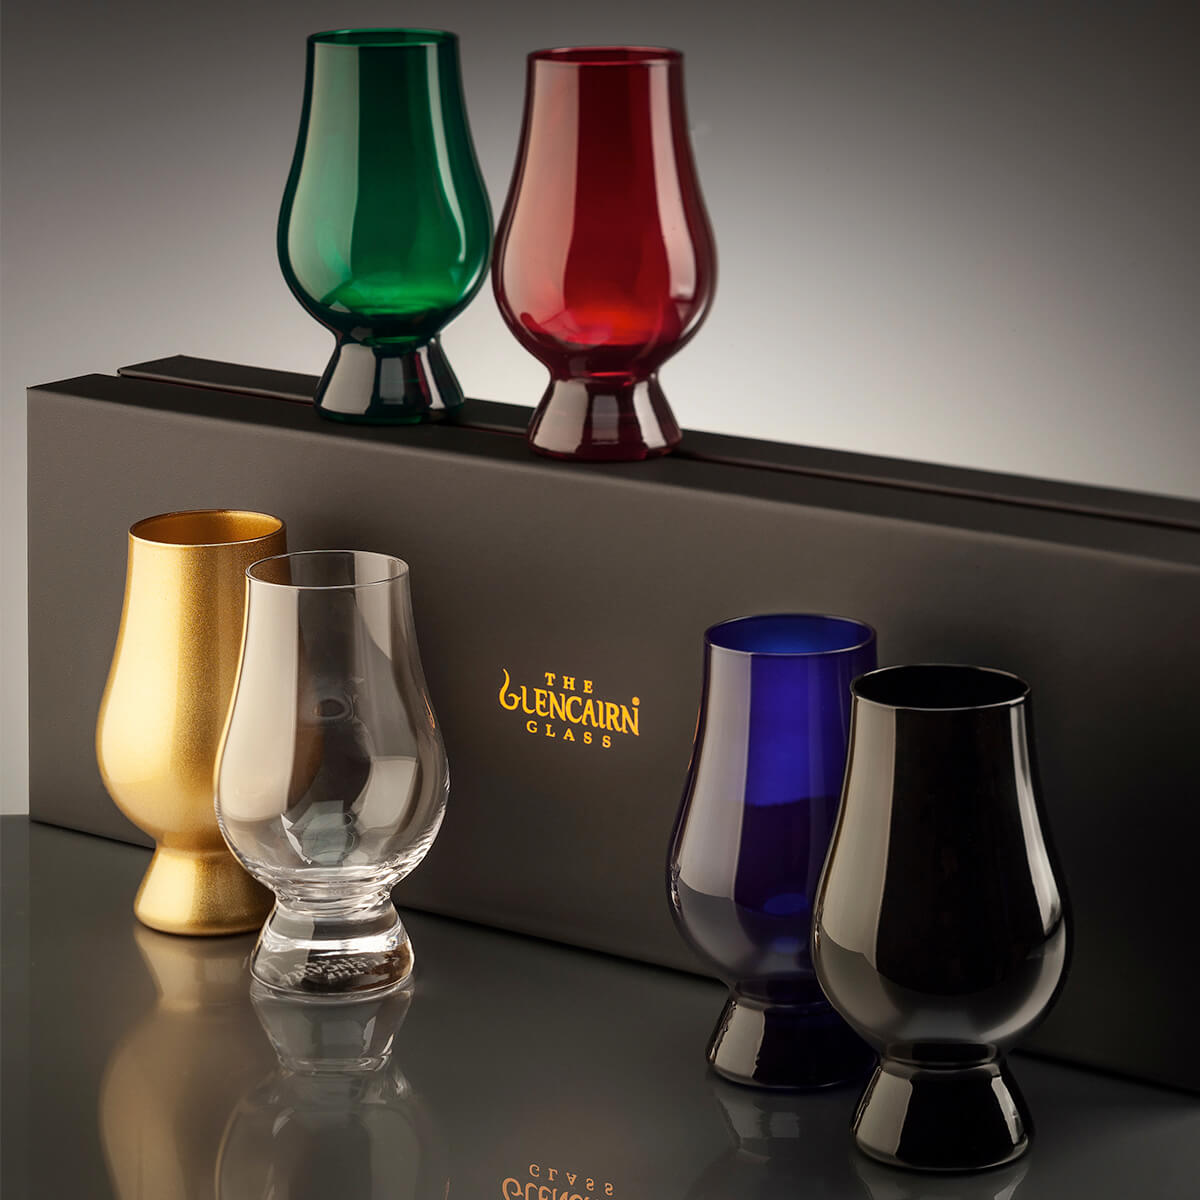 Set of Coloured Glencairn Glasses in Green, Red, Gold, Blue, Black, Clear with box